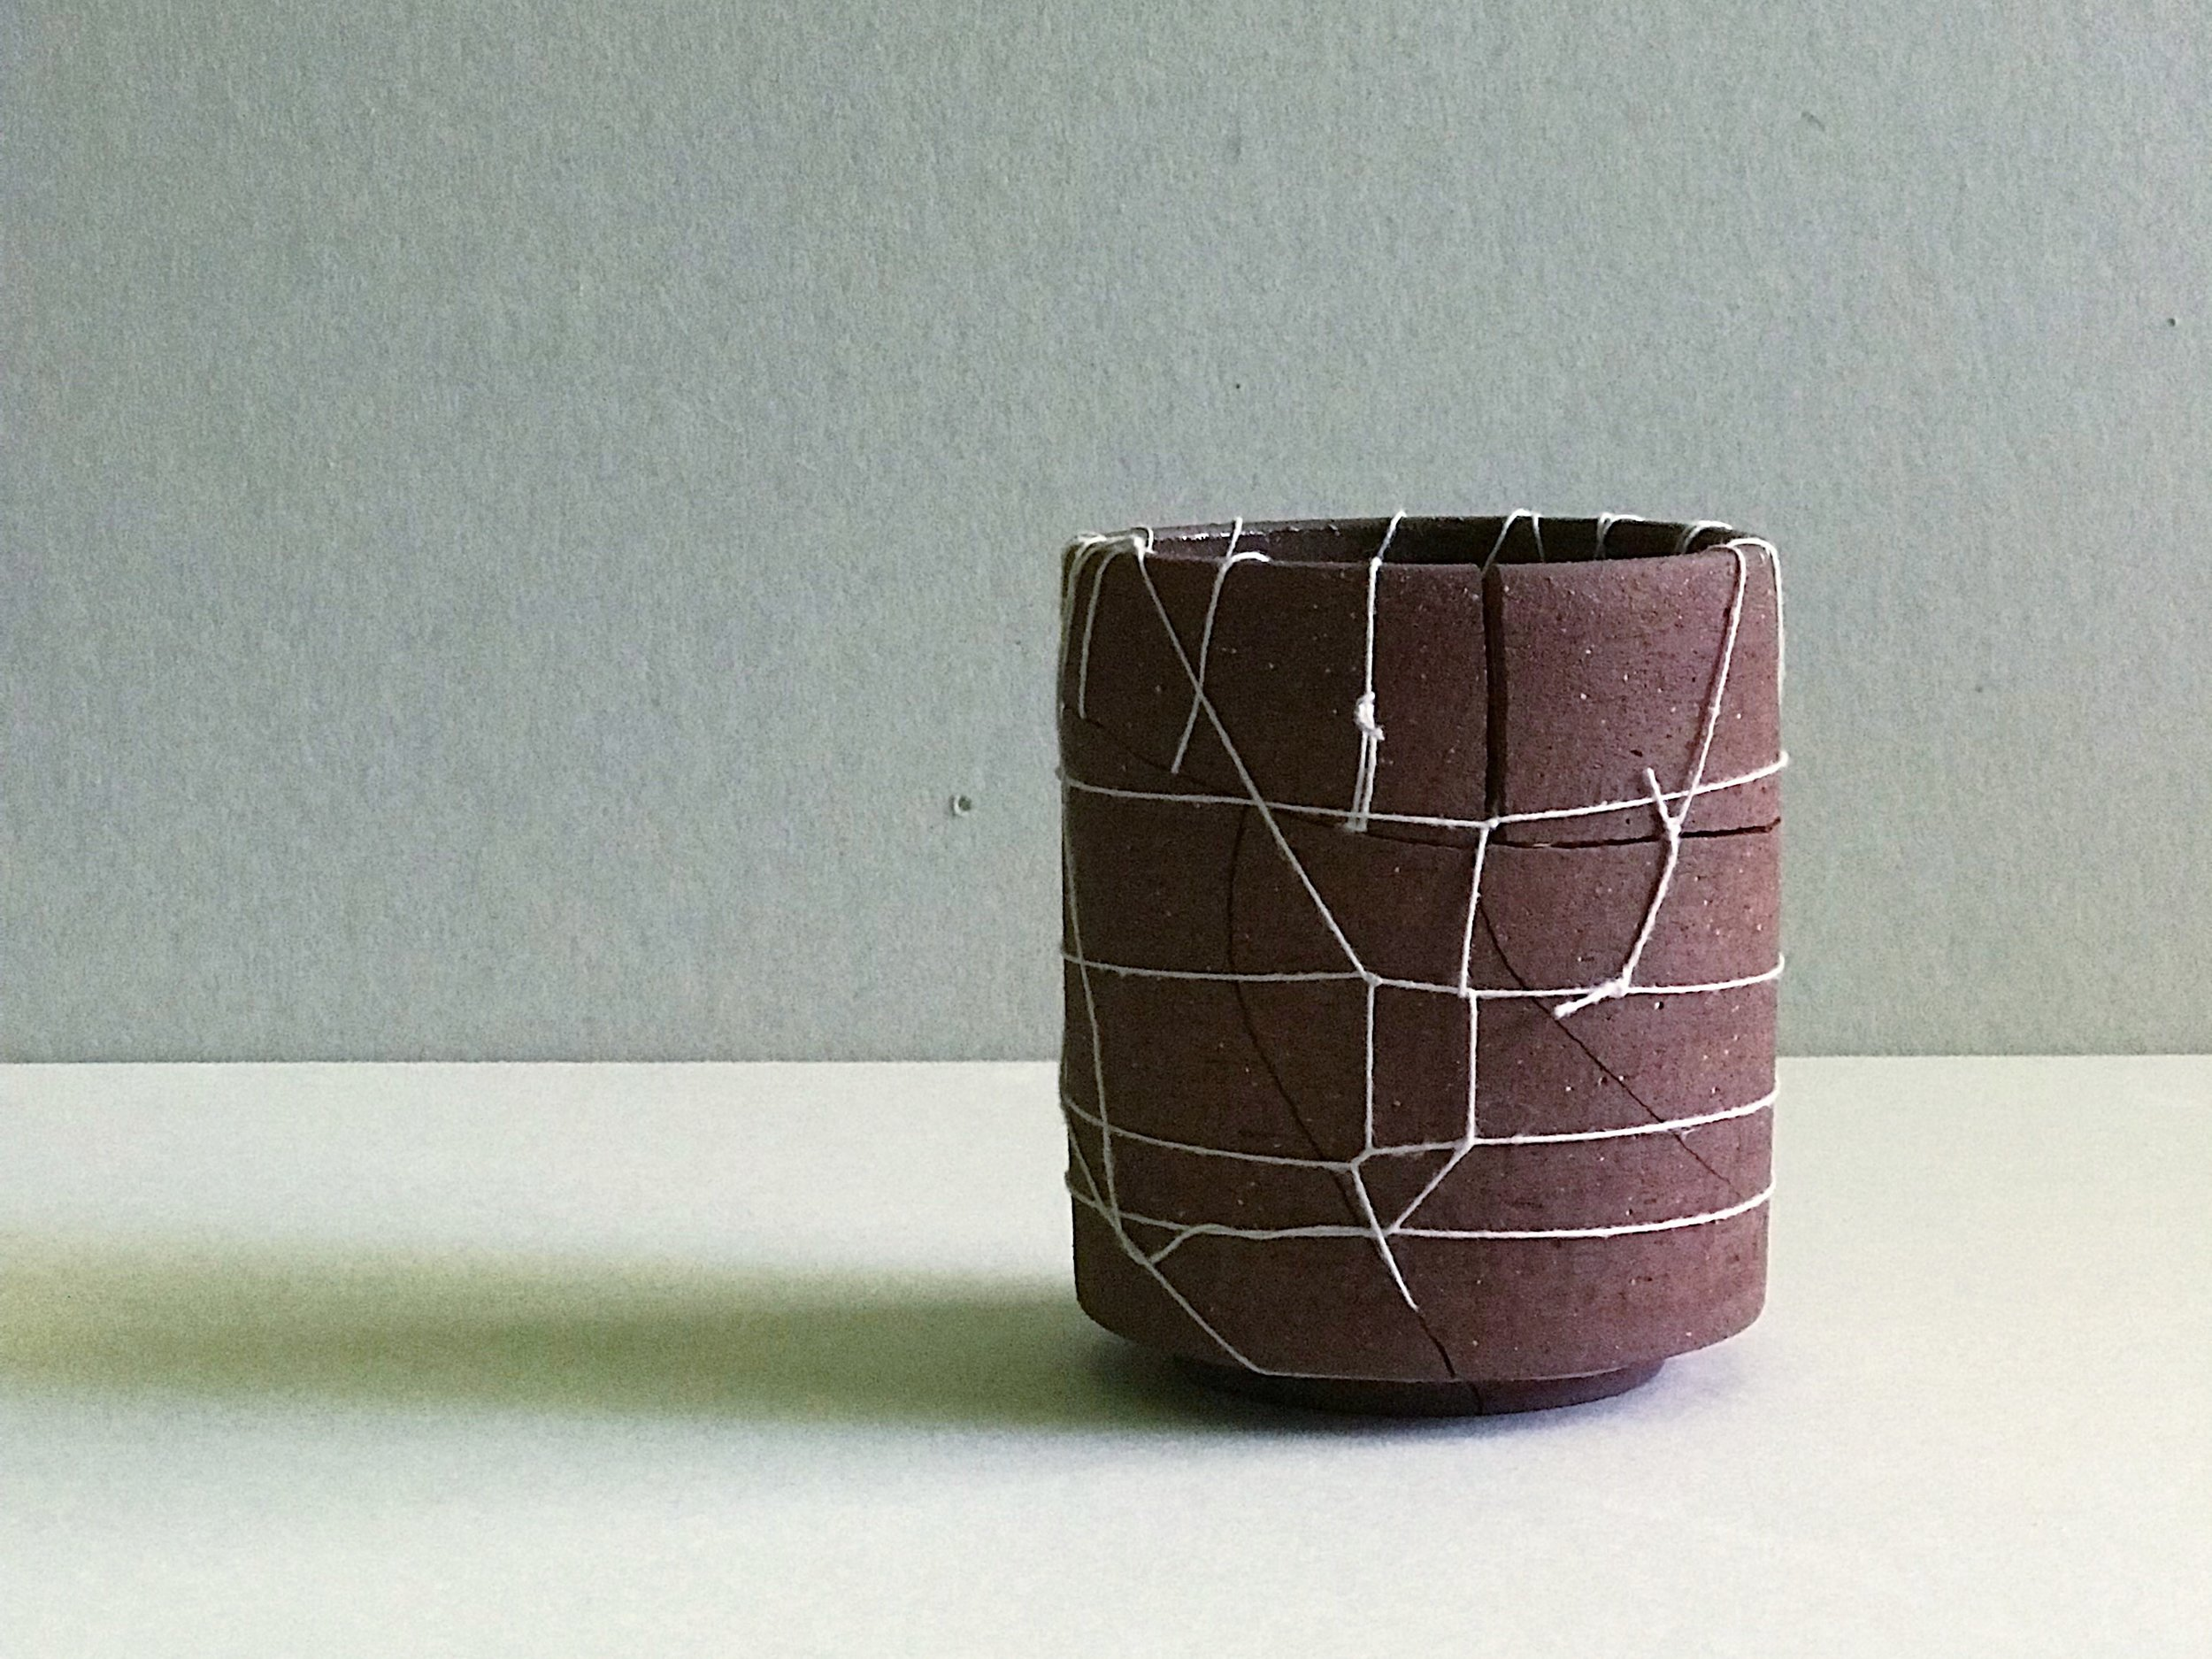 Stoneware, linen bookbinding thread